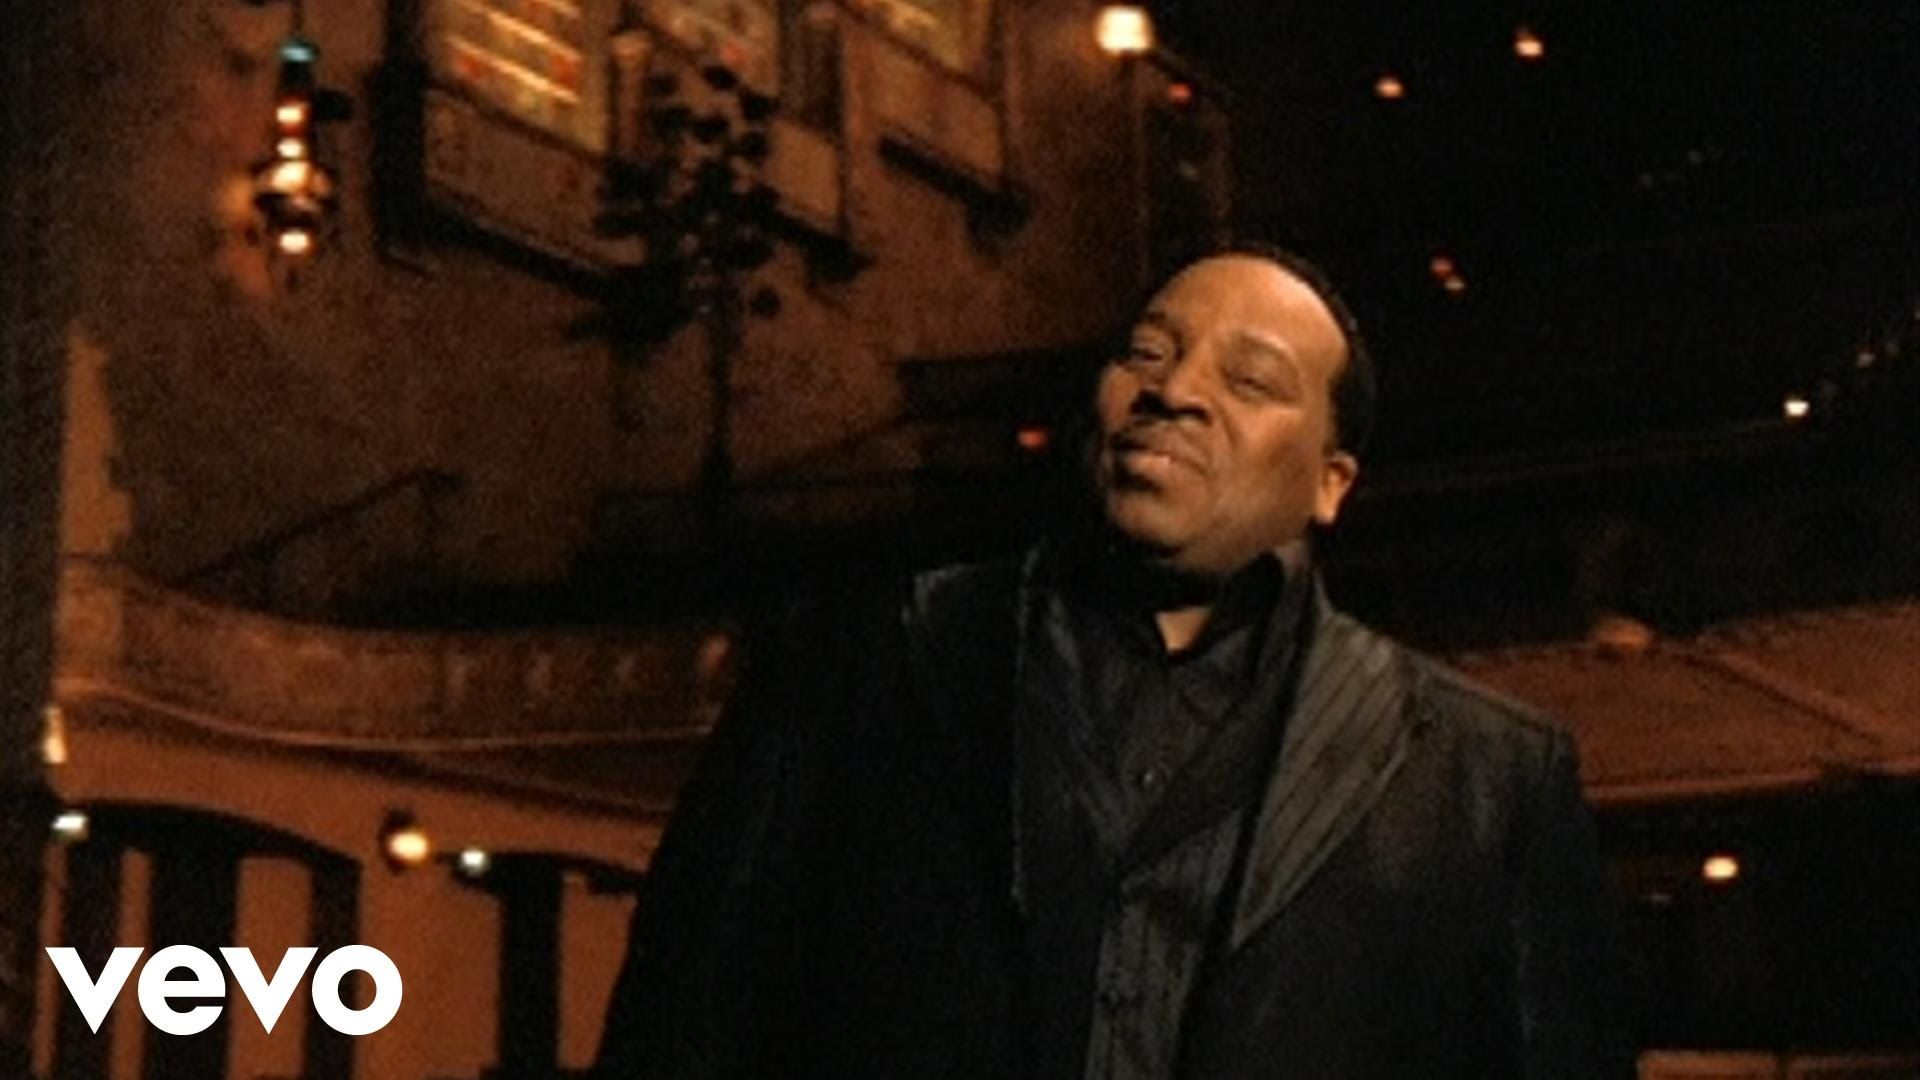 Marvin Sapp S Official Music Video For Never Would Have Made It Click To Listen To Marvin Sapp On Spotify Http Music Videos Vevo Music Videos Soul Music